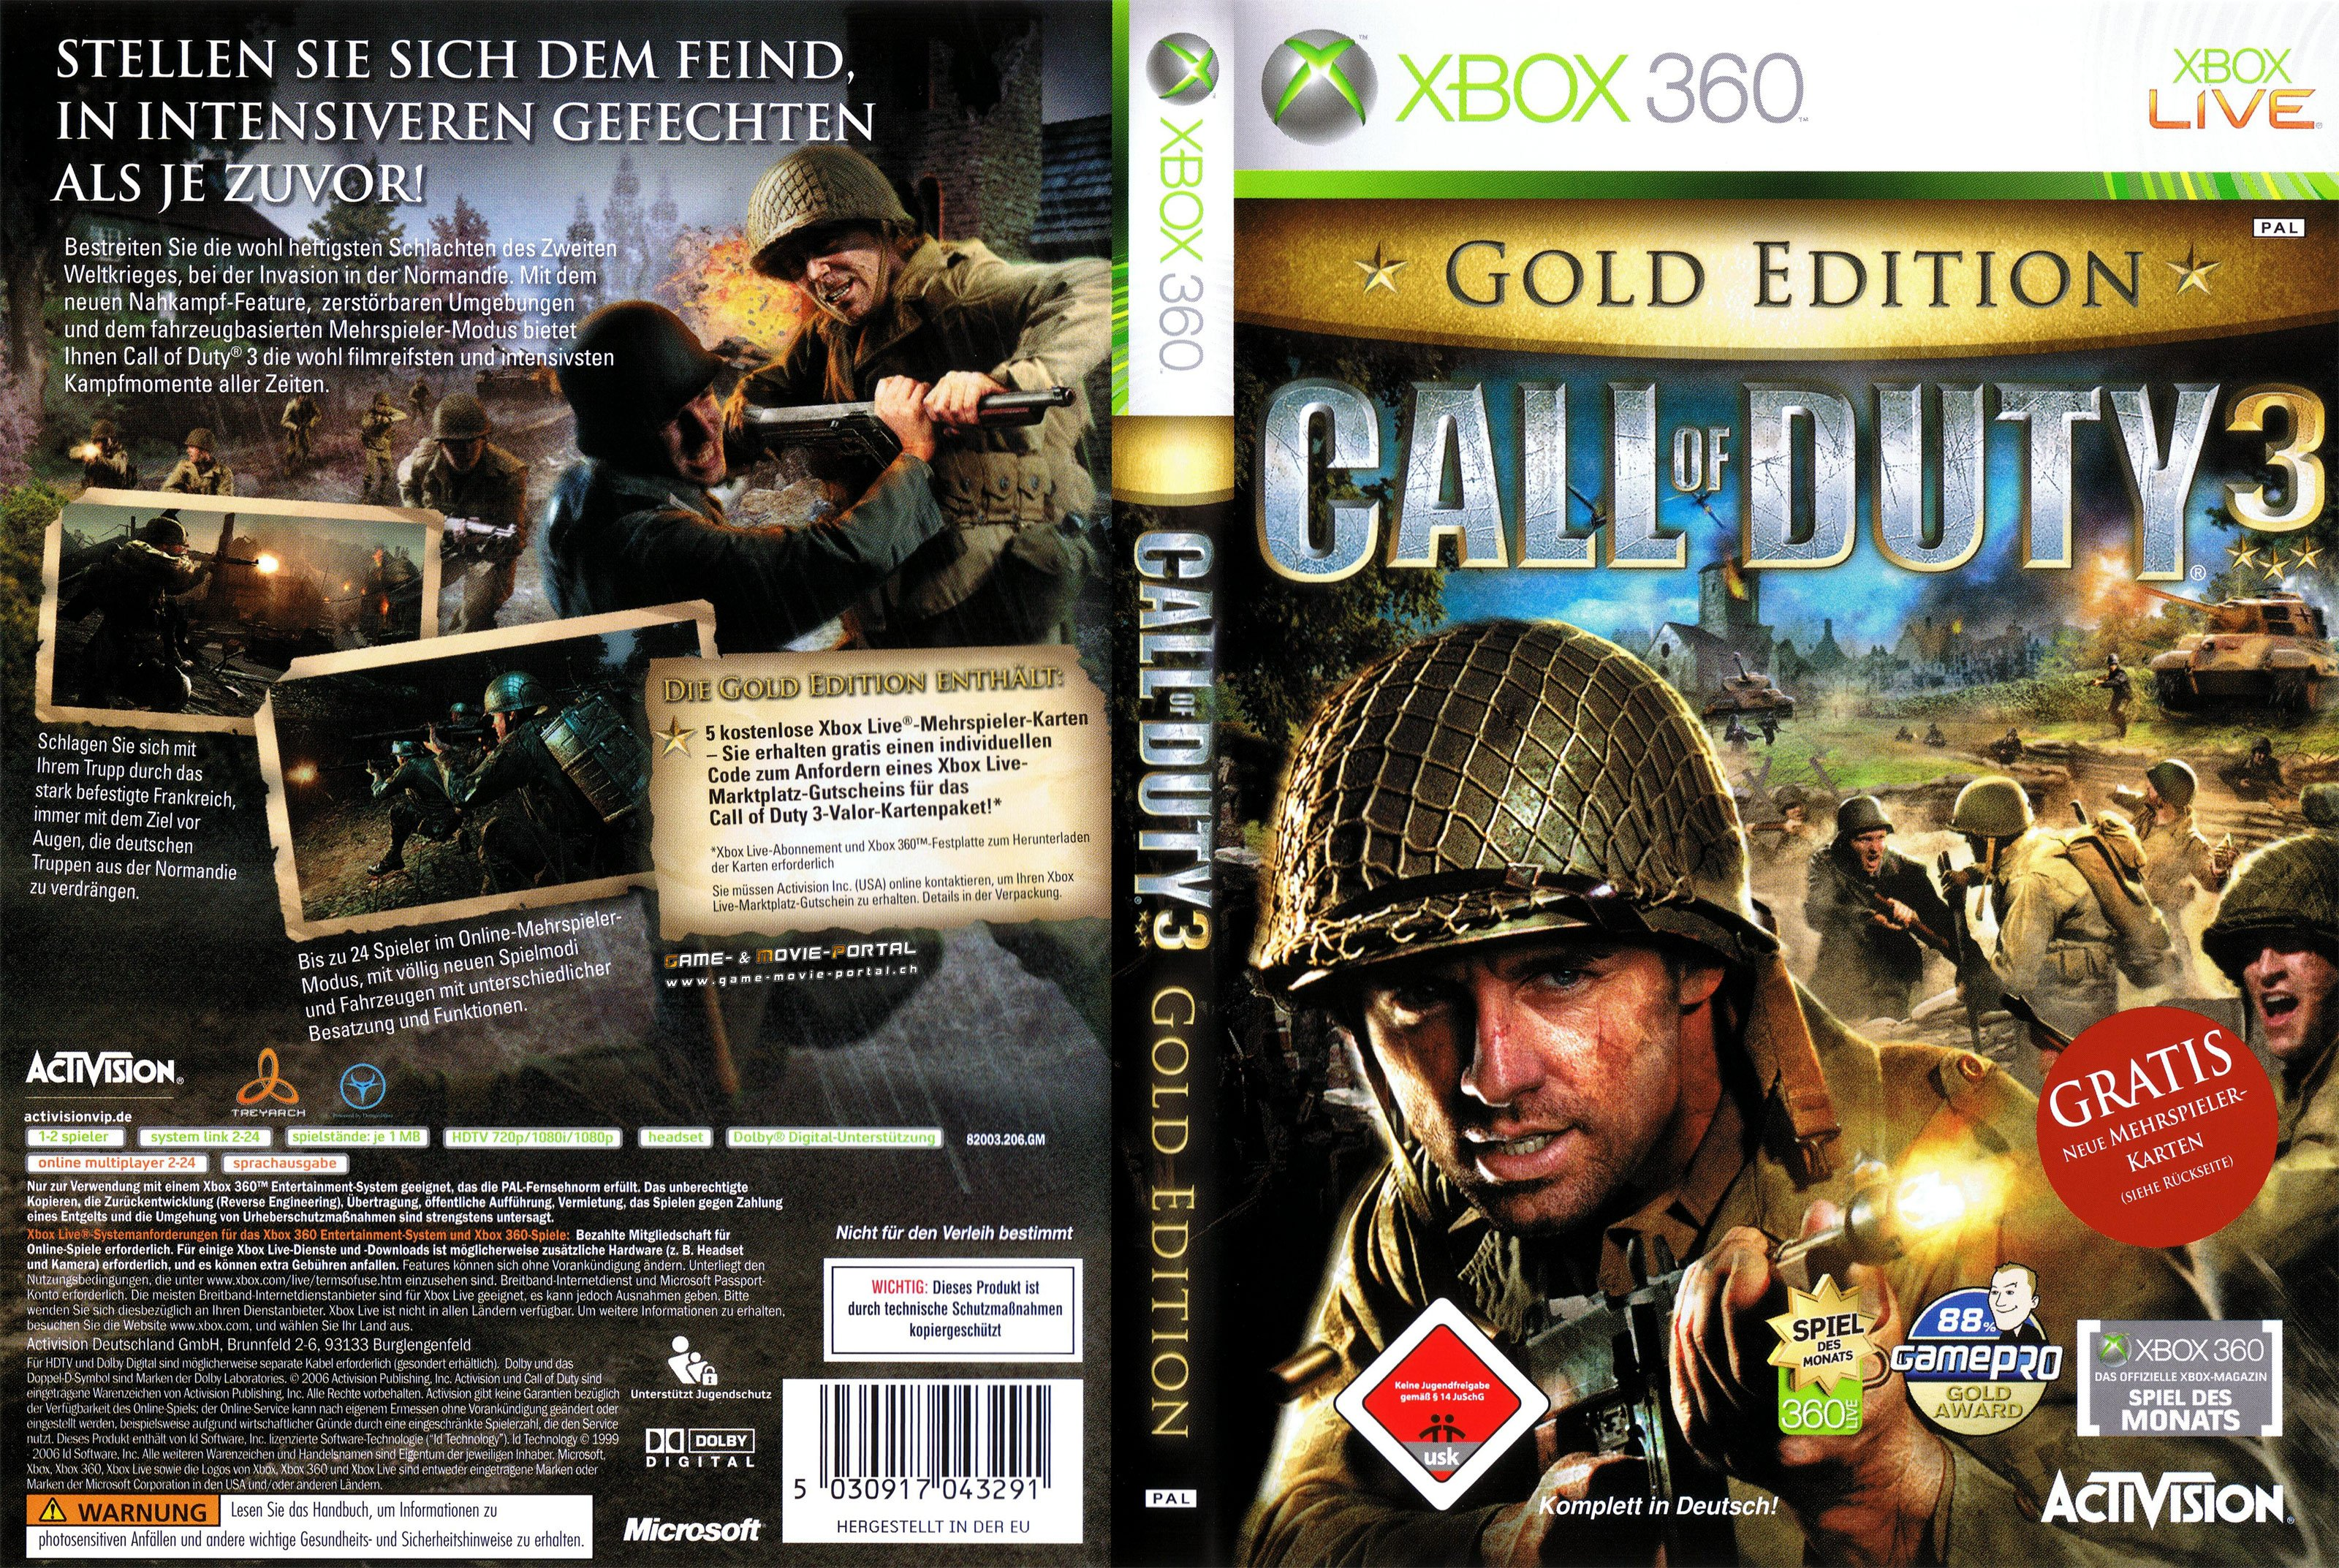 https://www.duzzgames.com/wp-content/uploads/2018/01/Call-of-duty-3-front-cover.jpg